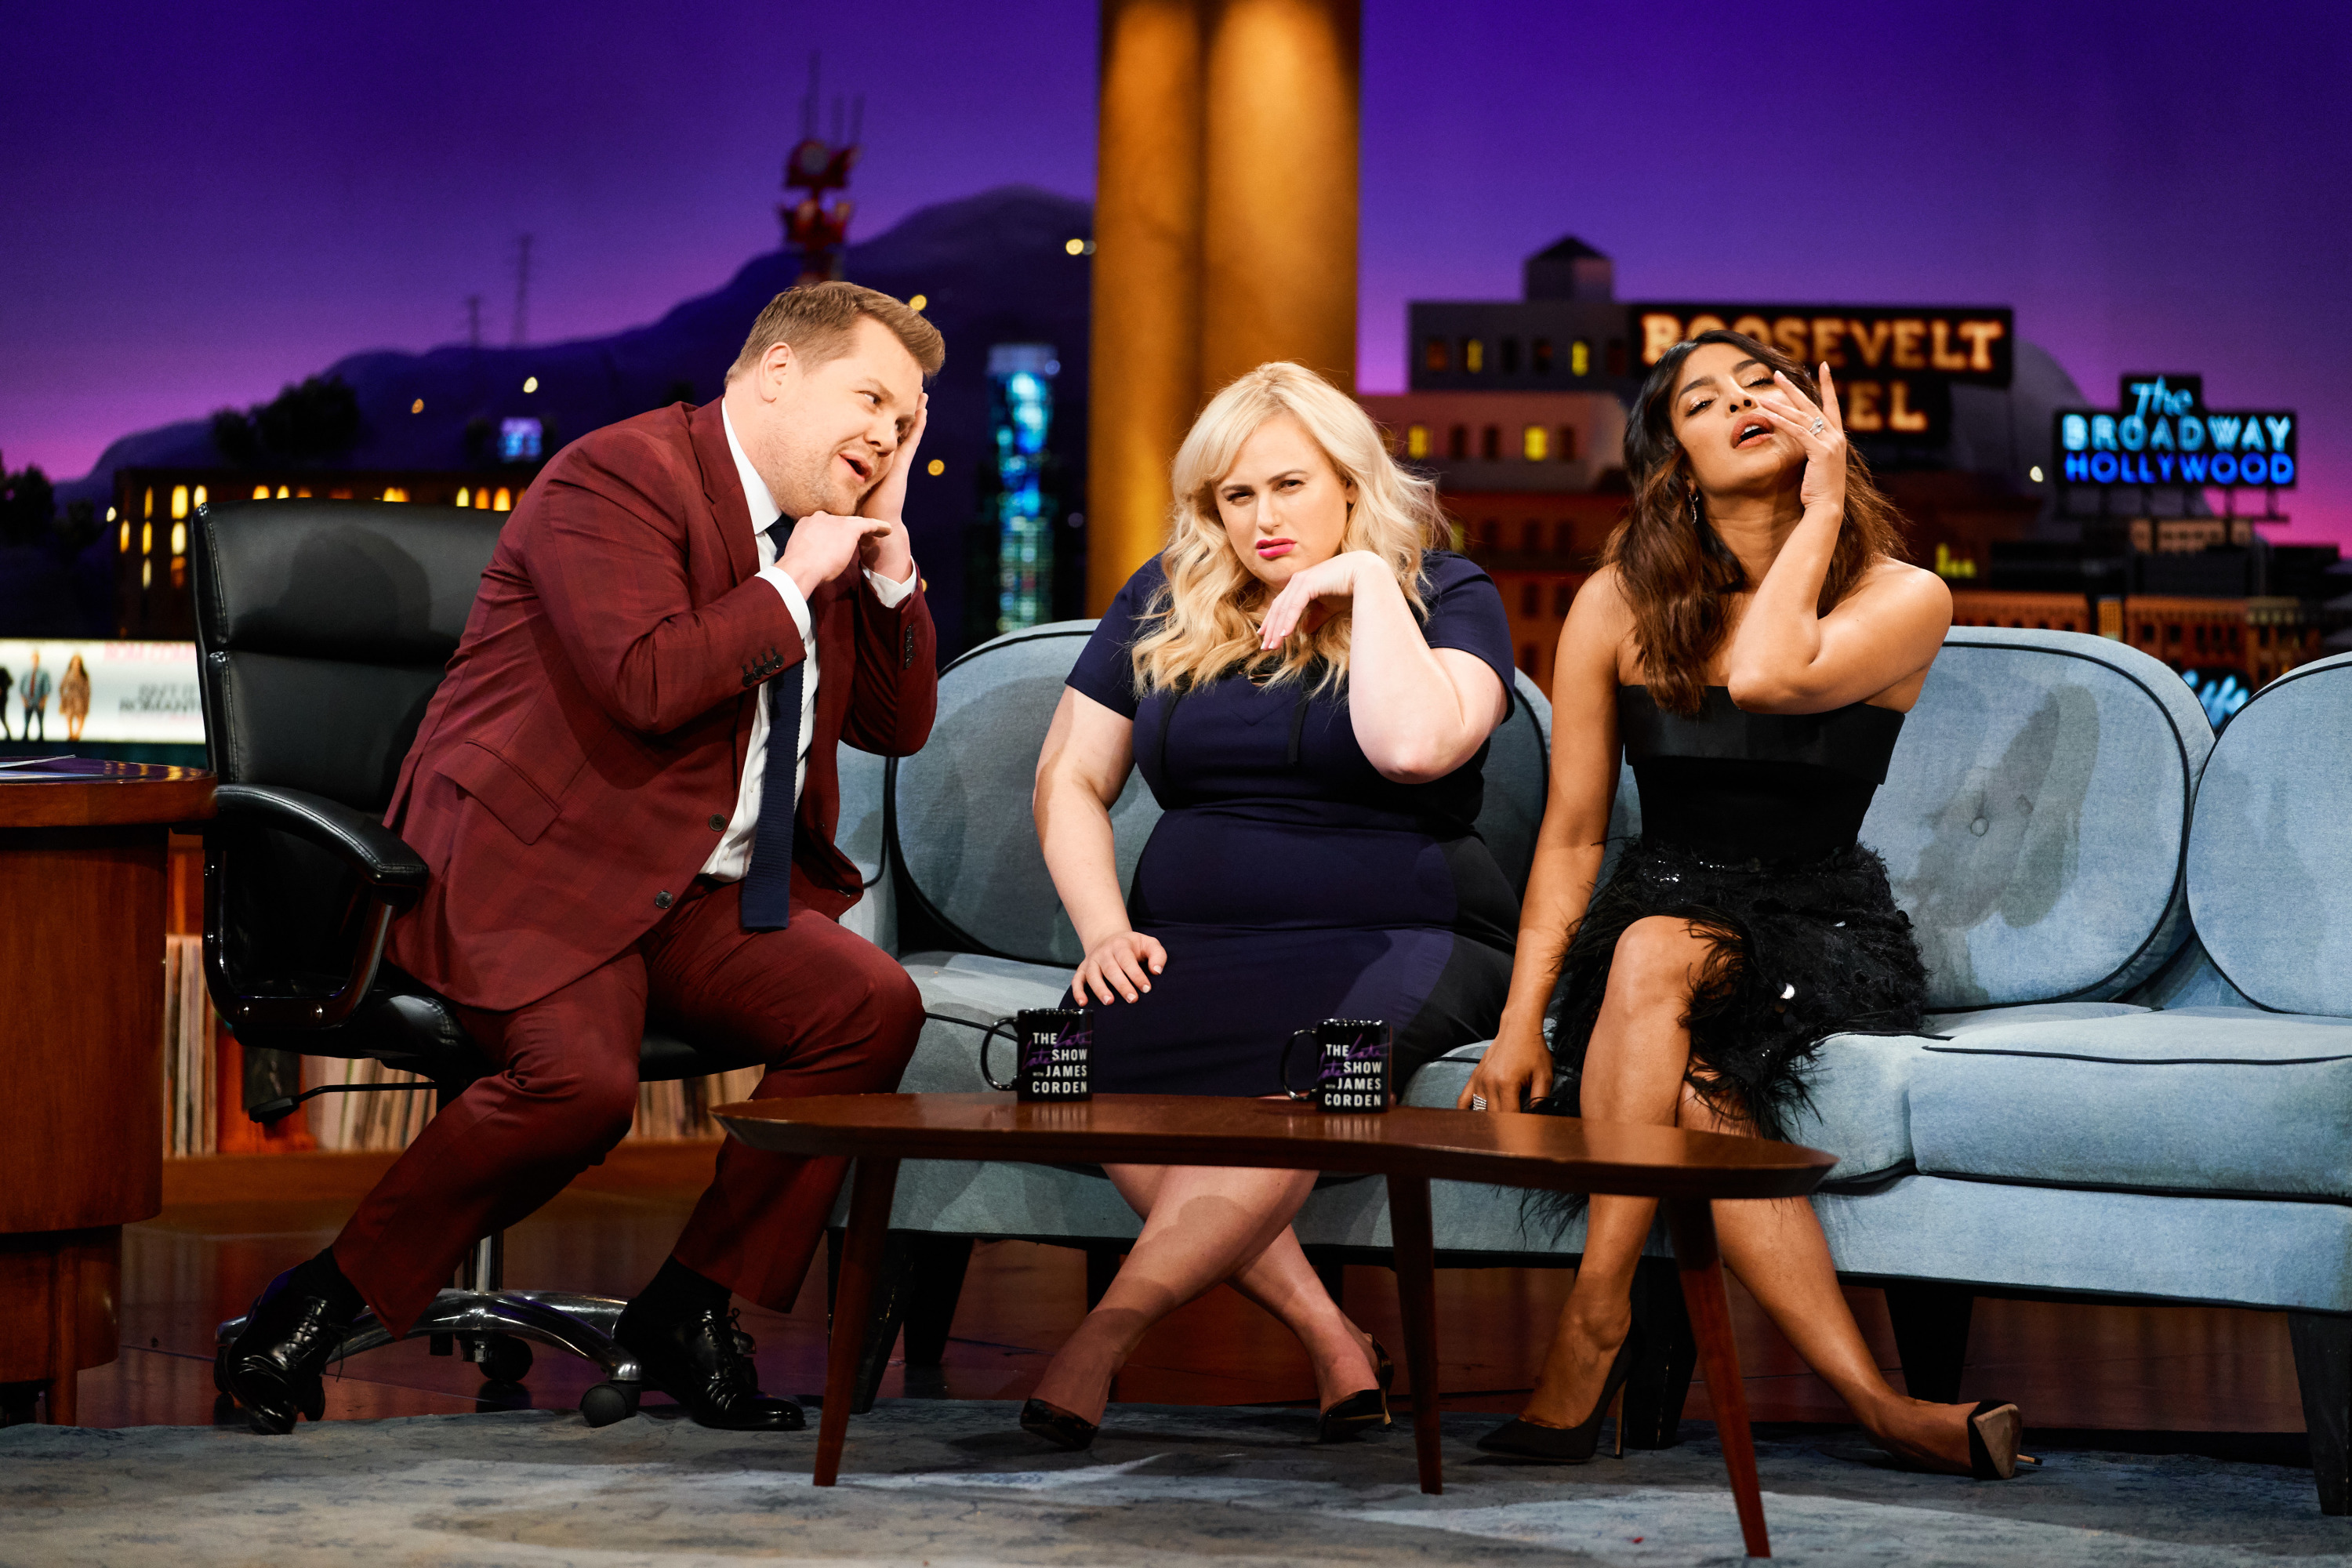 The Late Late Show with James Corden airing Tuesday, February 12, 2019, with guests Rebel Wilson, Priyanka Chopra Jonas, and magician Justin Flom.